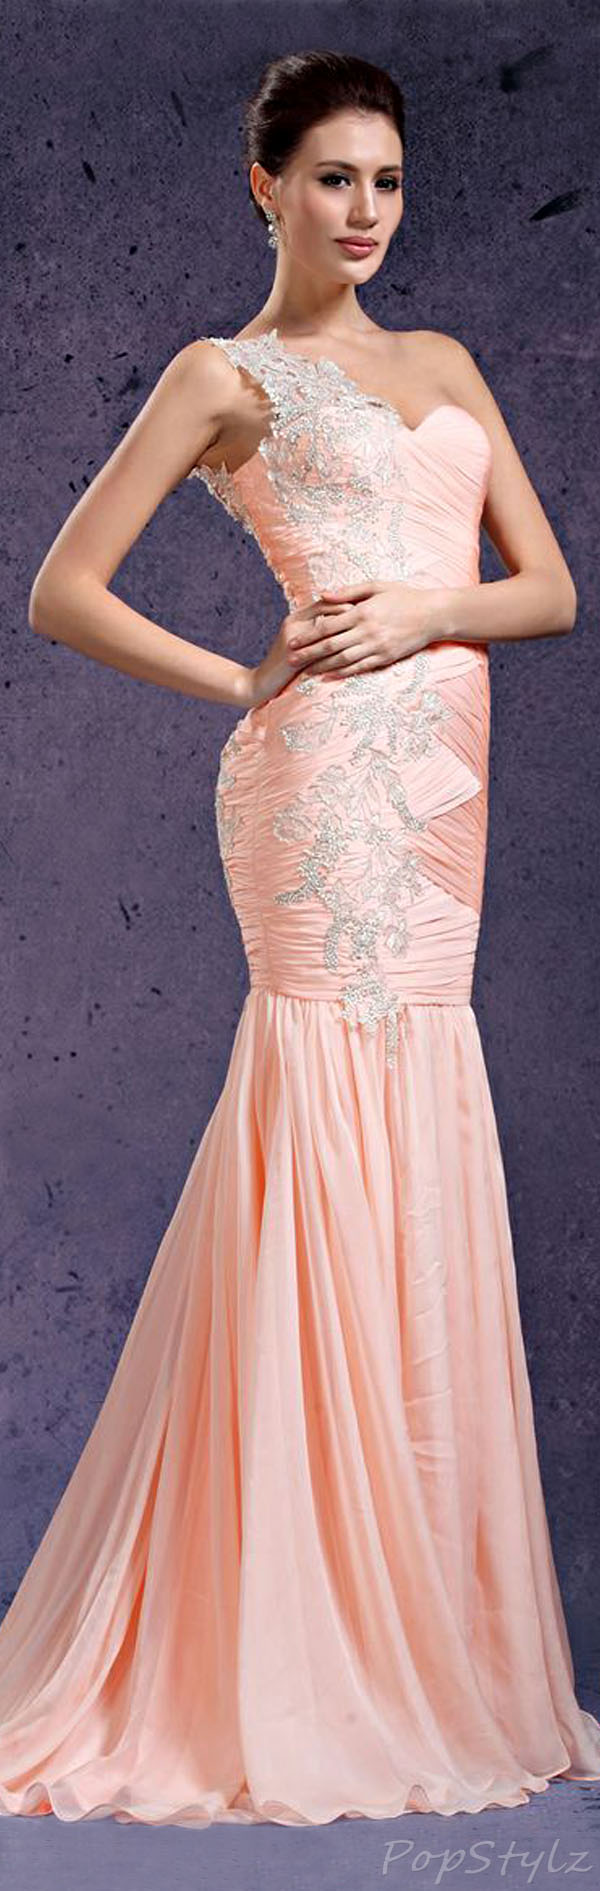 eDressit Pink Evening Gown